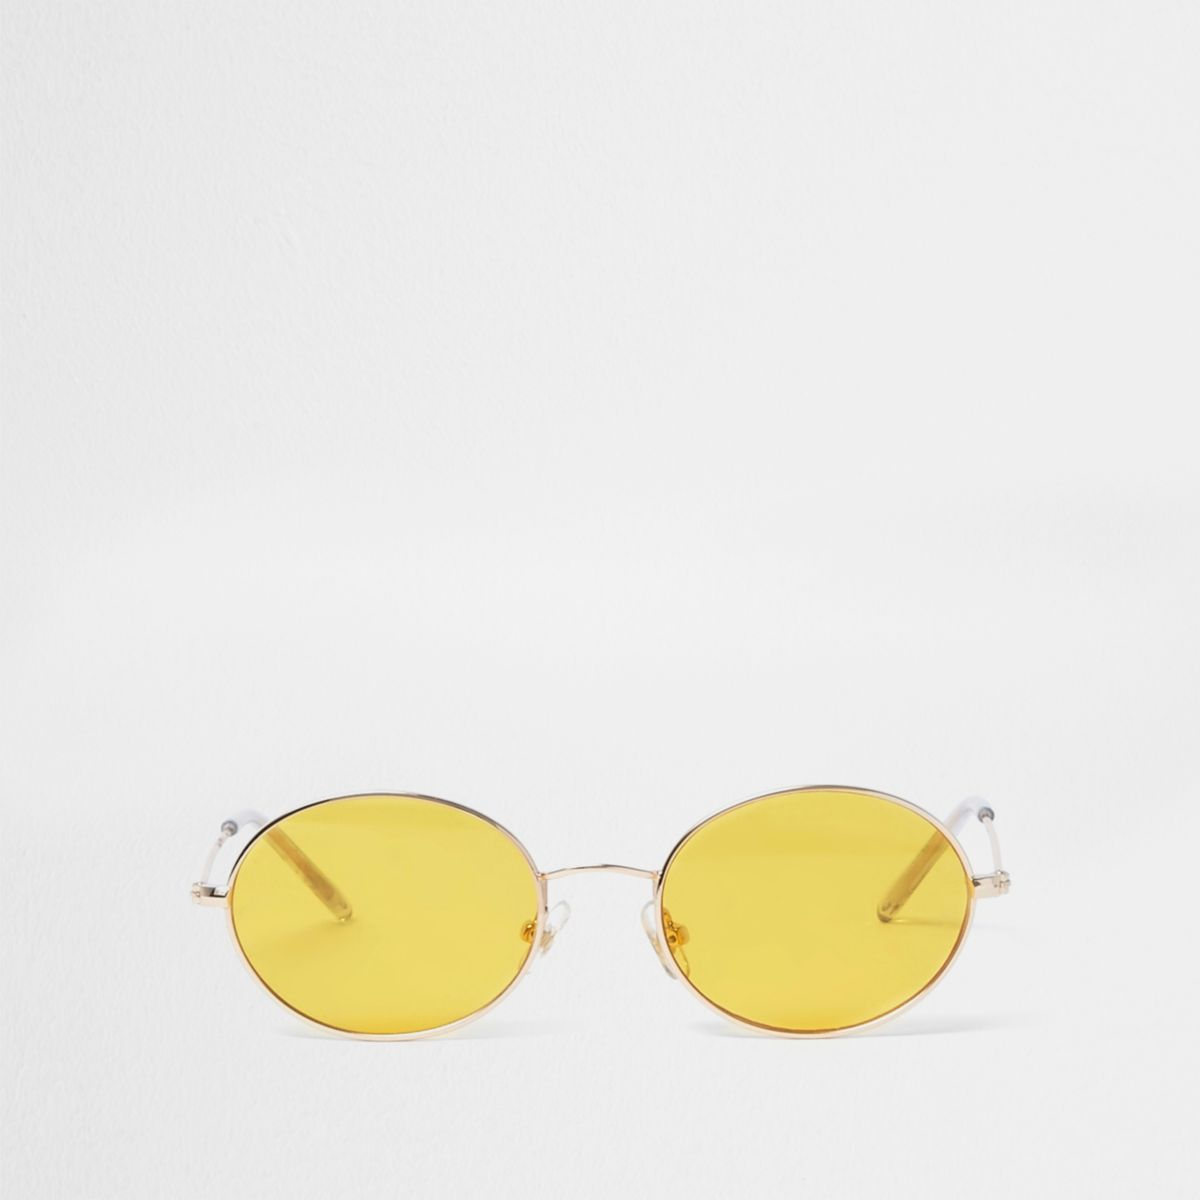 Girls yellow tinted oval retro sunglasses